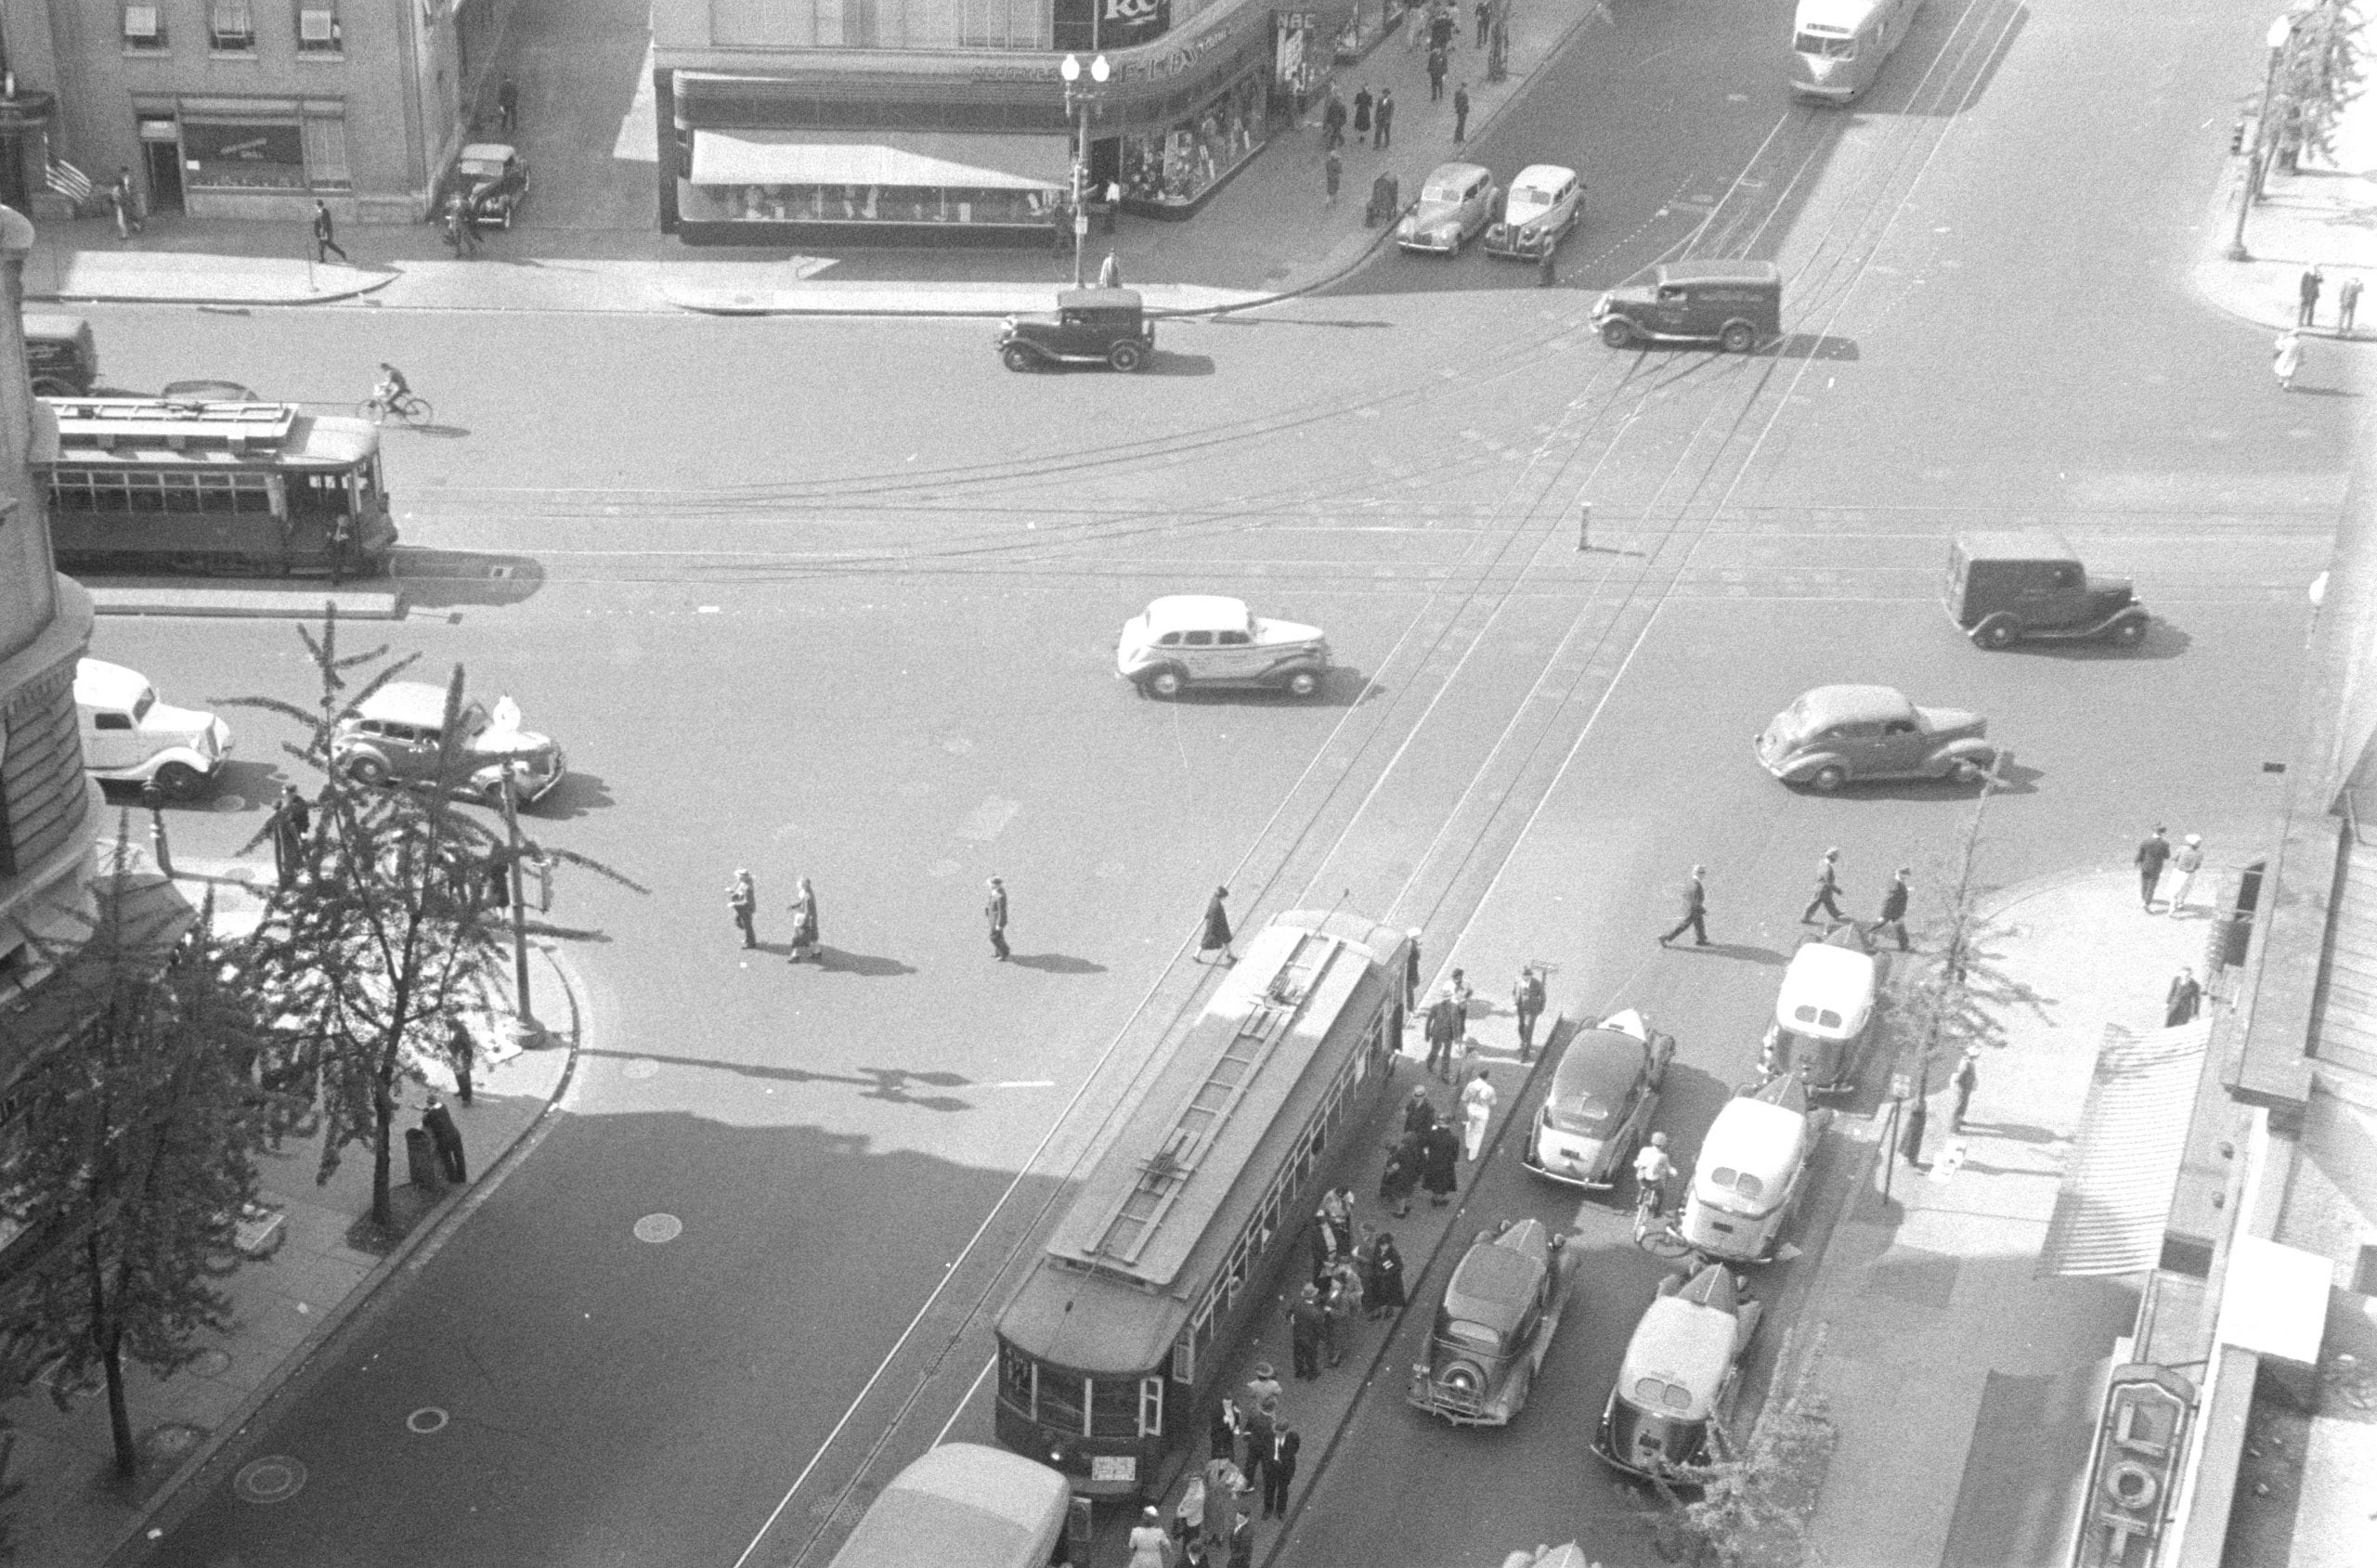 Washington, D.C. A street scene showing street cars crossing at 14th Street and New York Avenue, photographed from a building near the Lotus Club